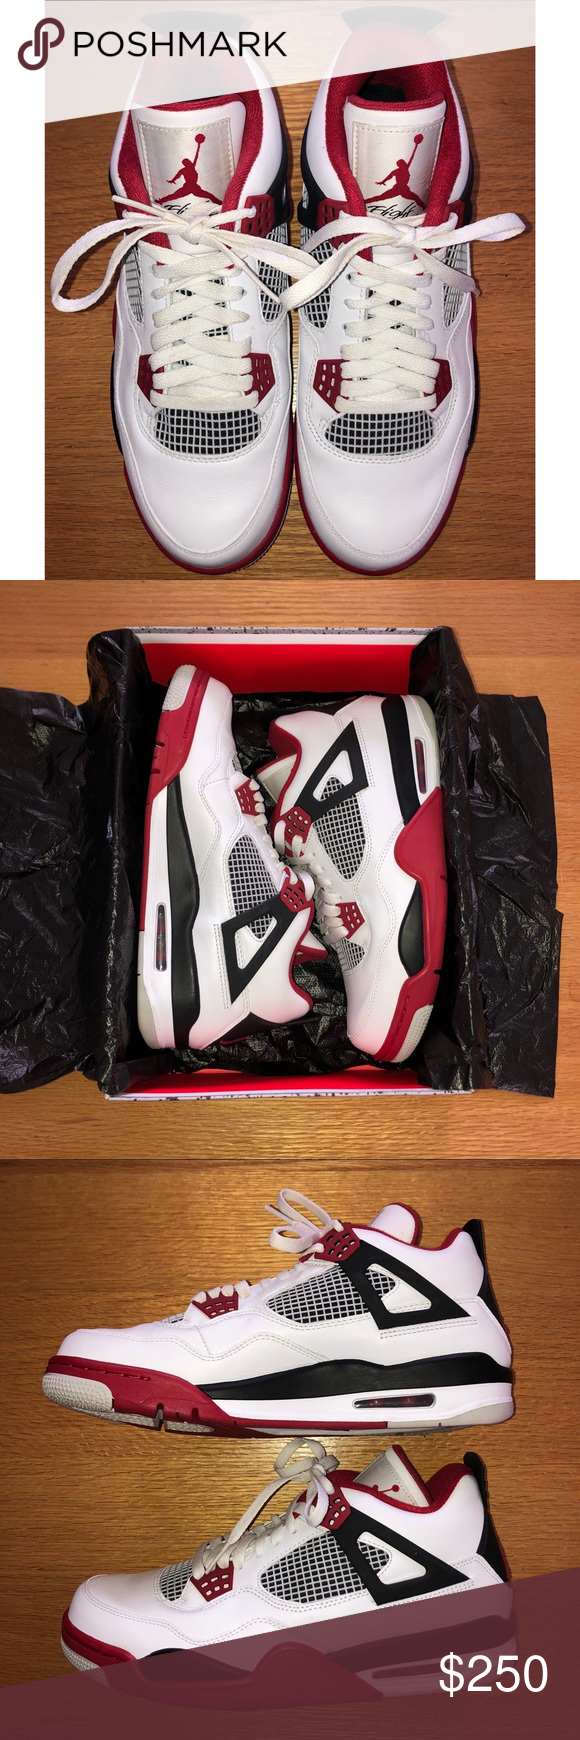 quality design 74a0c 17447 Air Jordan 4 Retro Fire Red 2012 White Varsity-Red Black Air Jordan 4 Retro.  Lightly worn with original box. Great condition with one small mark shown.